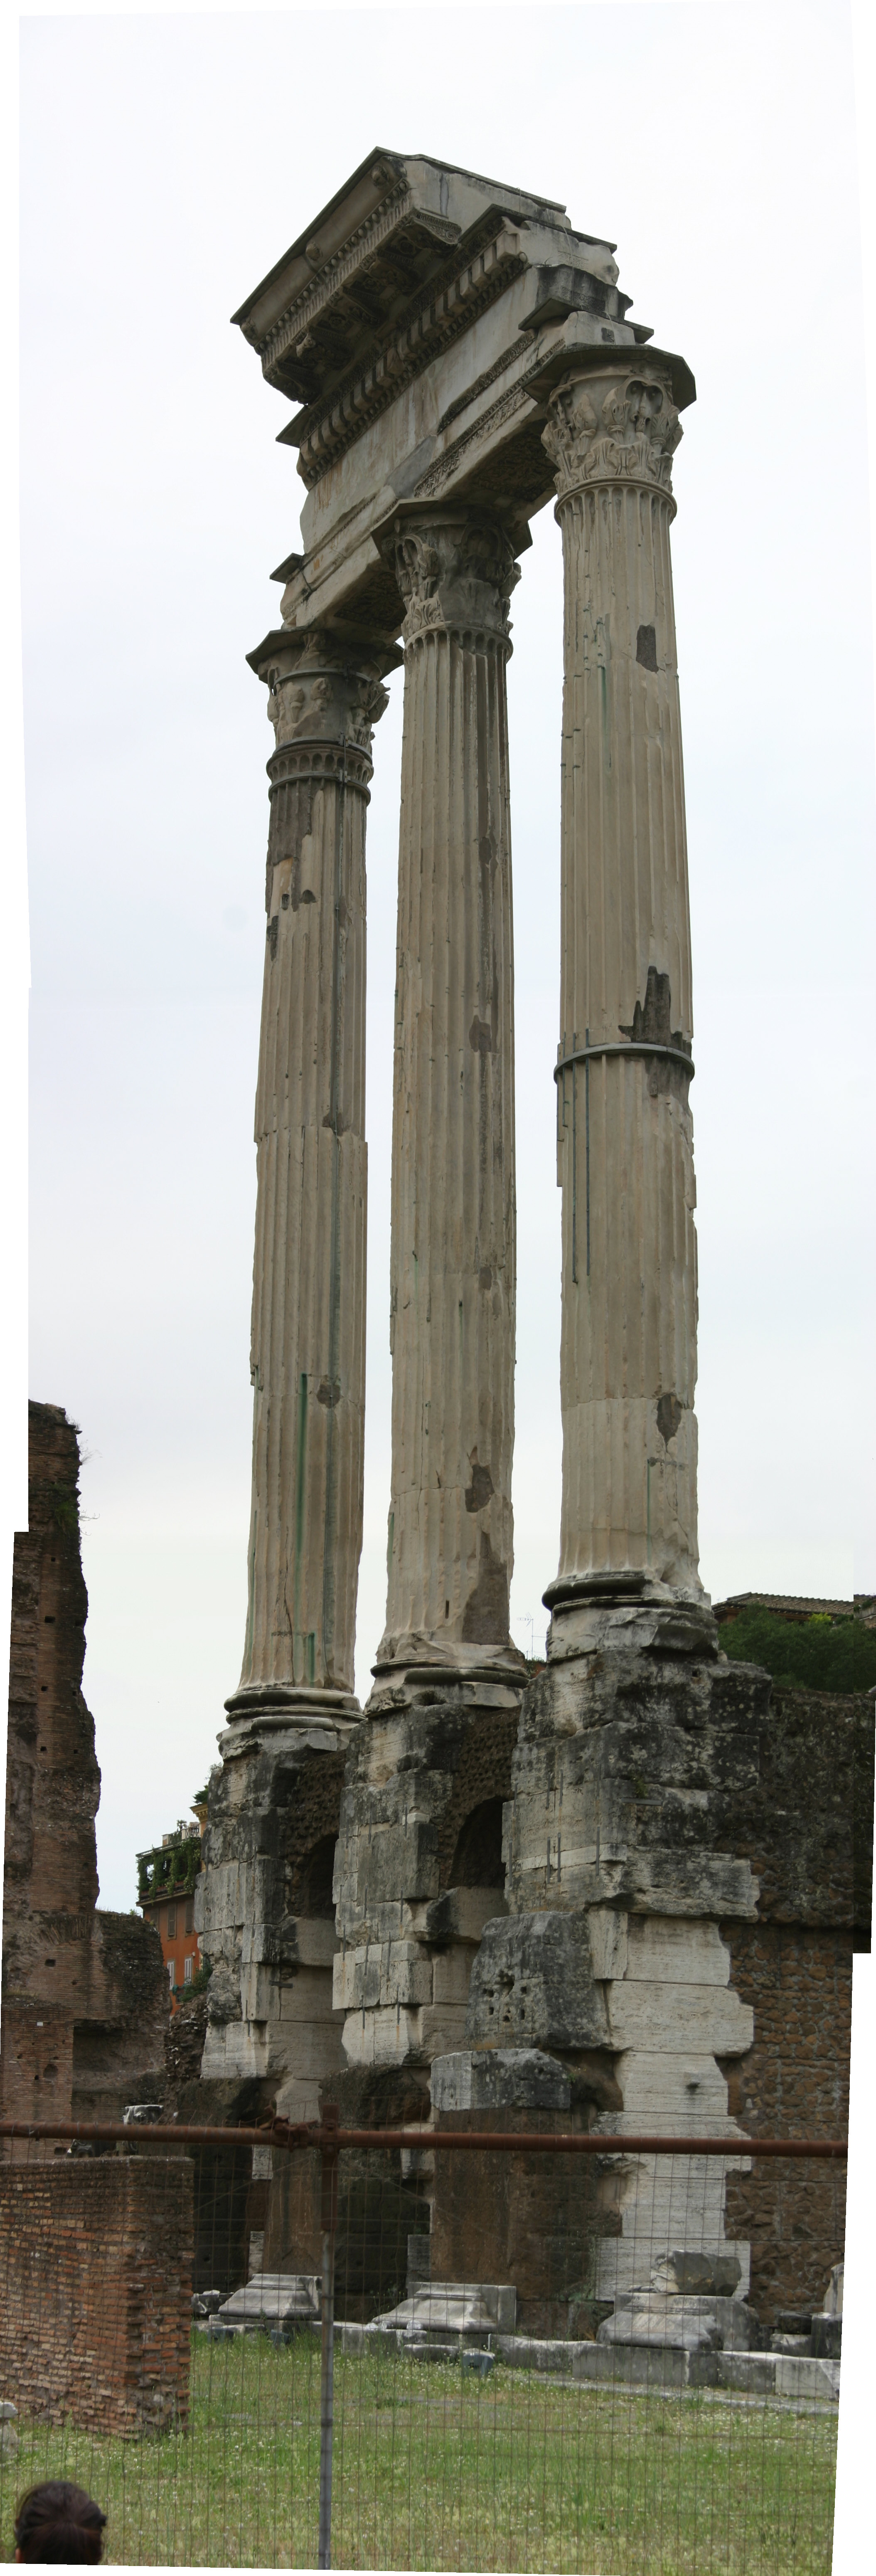 Opinions On Temple Of Castor And Pollux